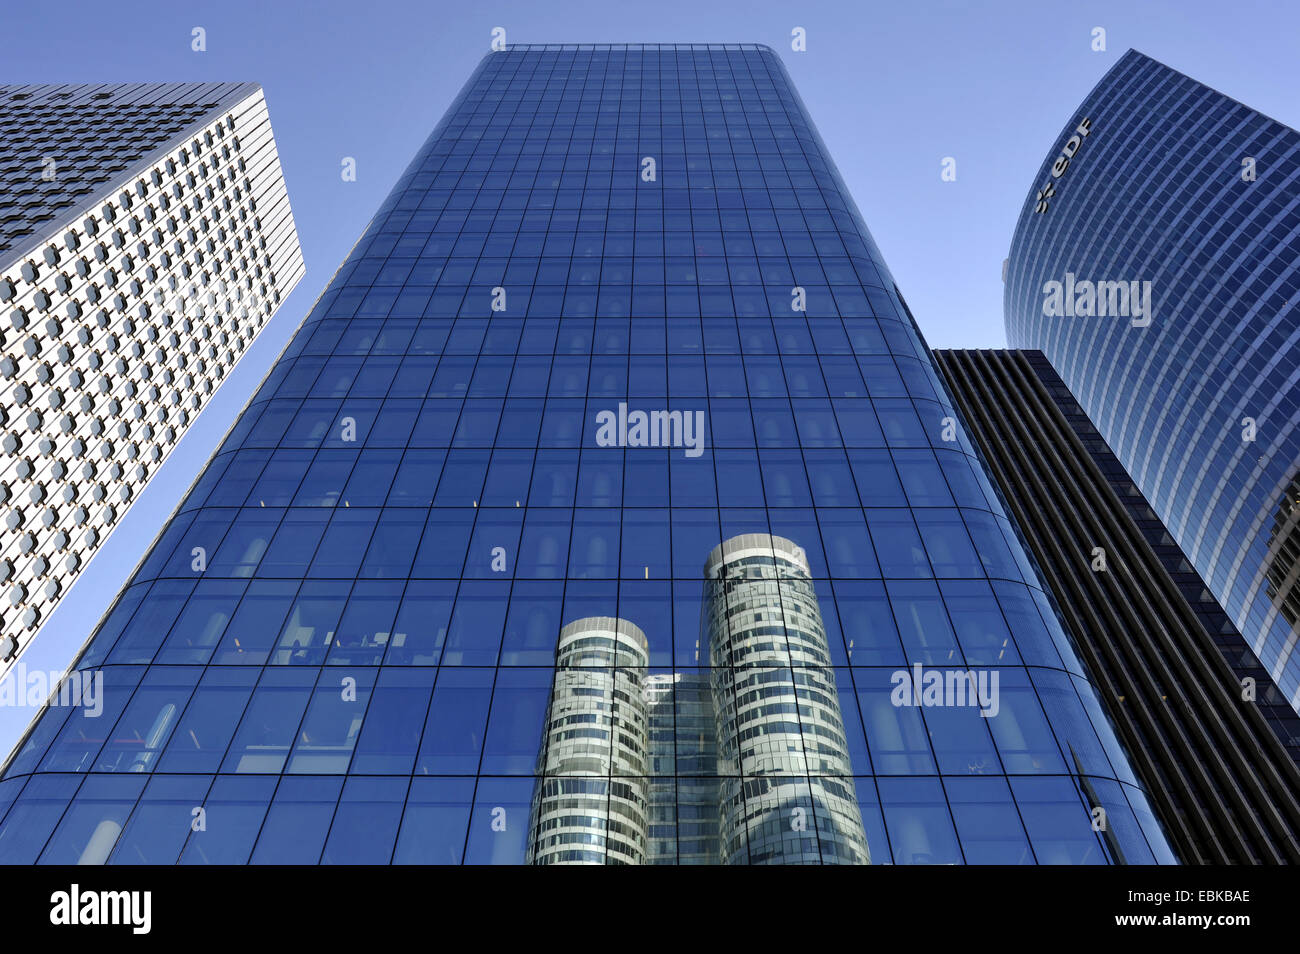 looming high-rise office buildings of the district La D�fense, France, Paris - Stock Image